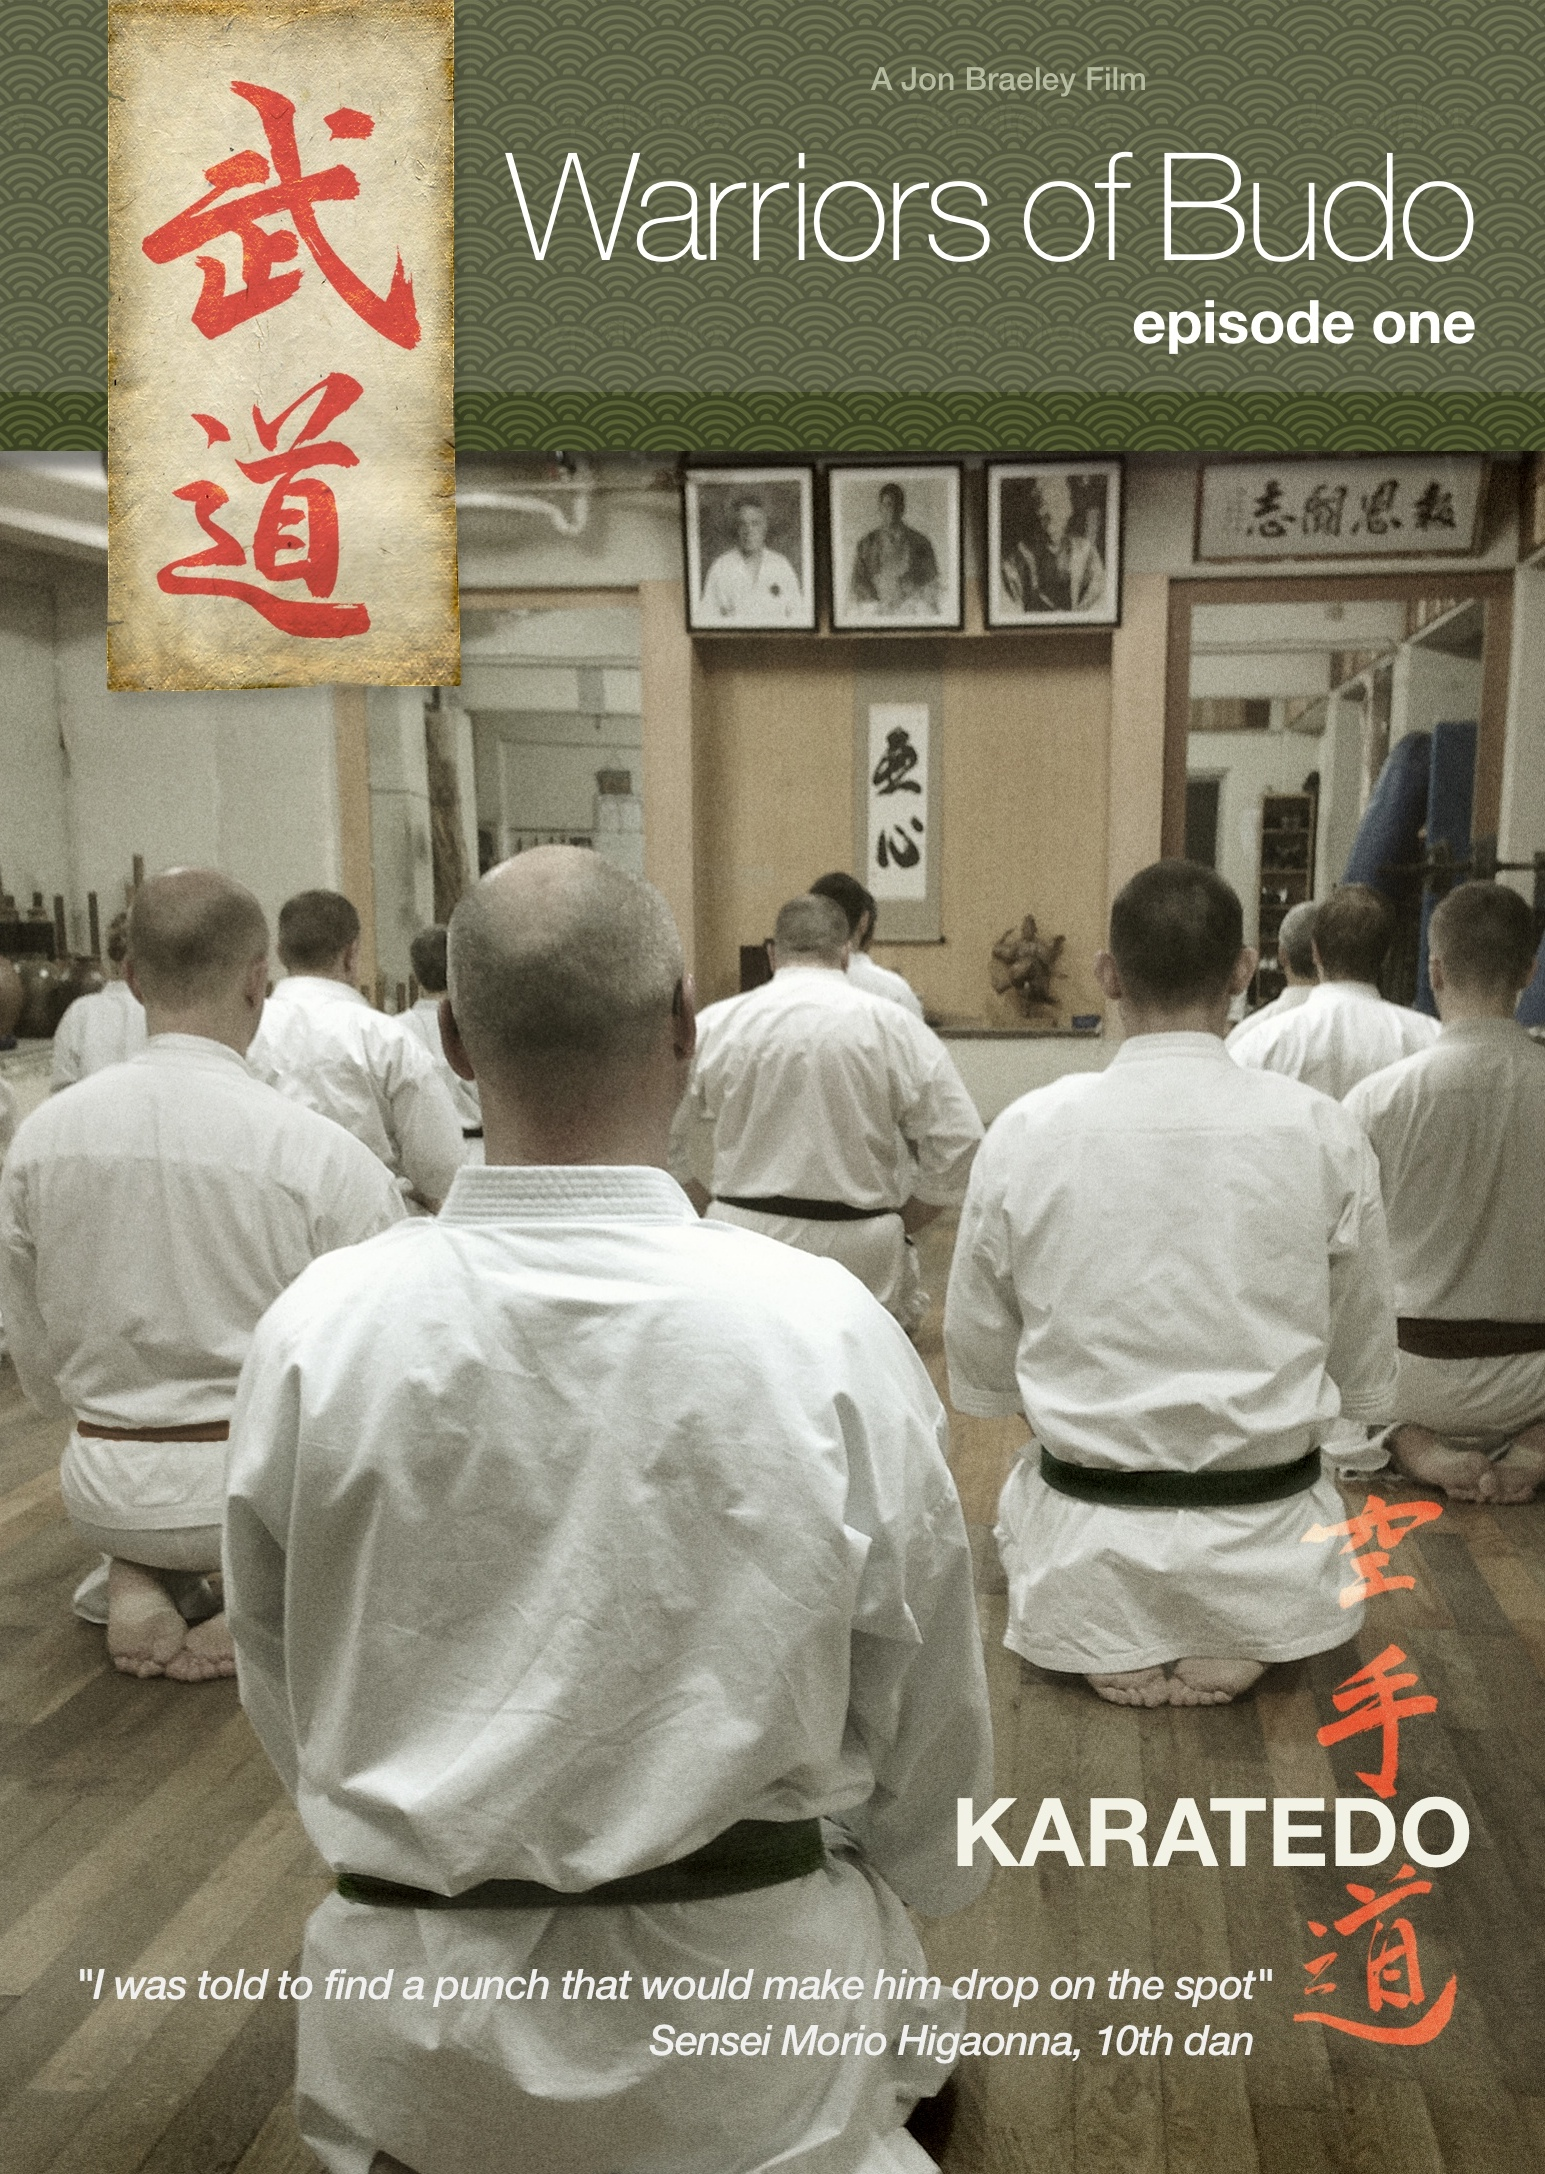 Episode One Karatedo